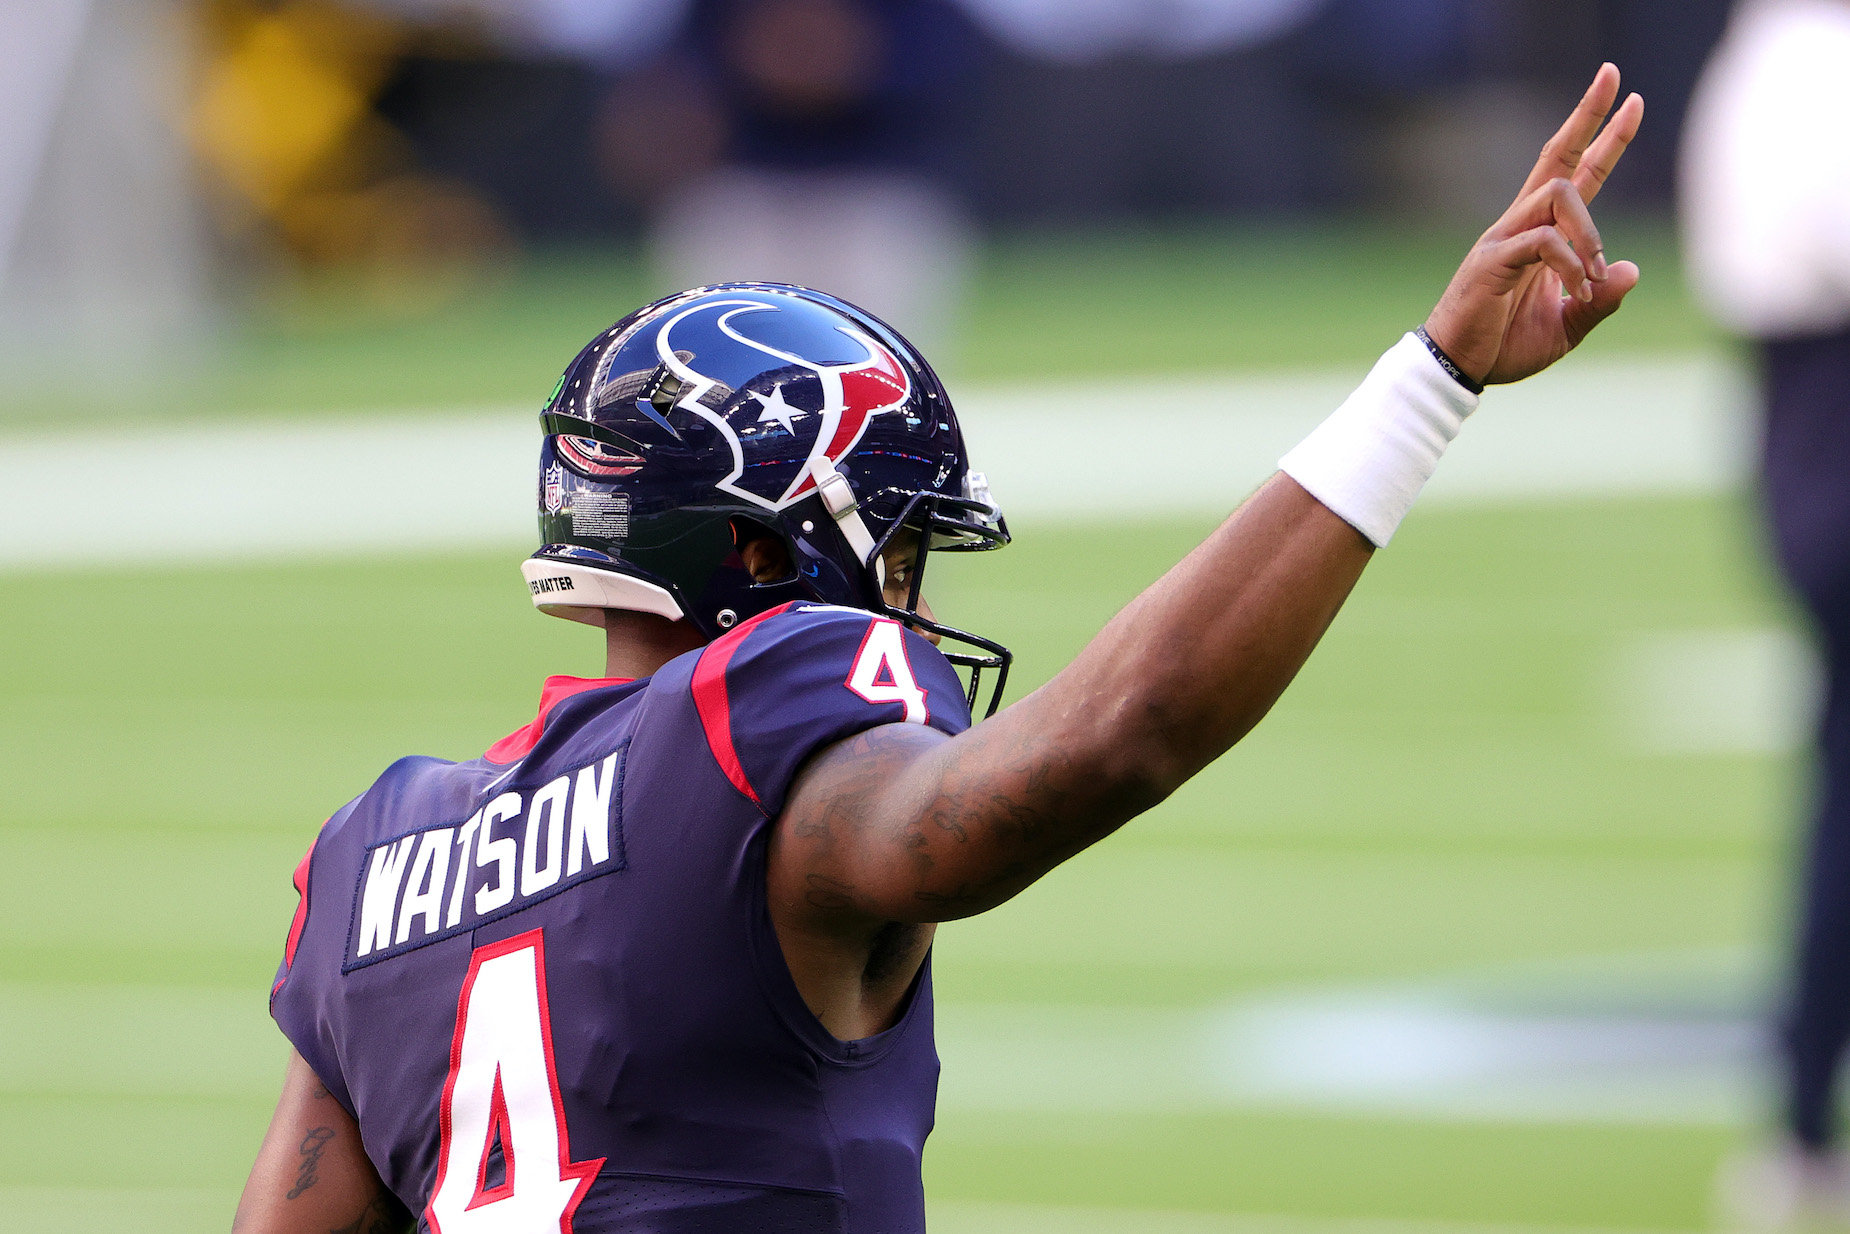 While Deshaun Watson has proven to be a star, he's not happy with the Houston Texans.